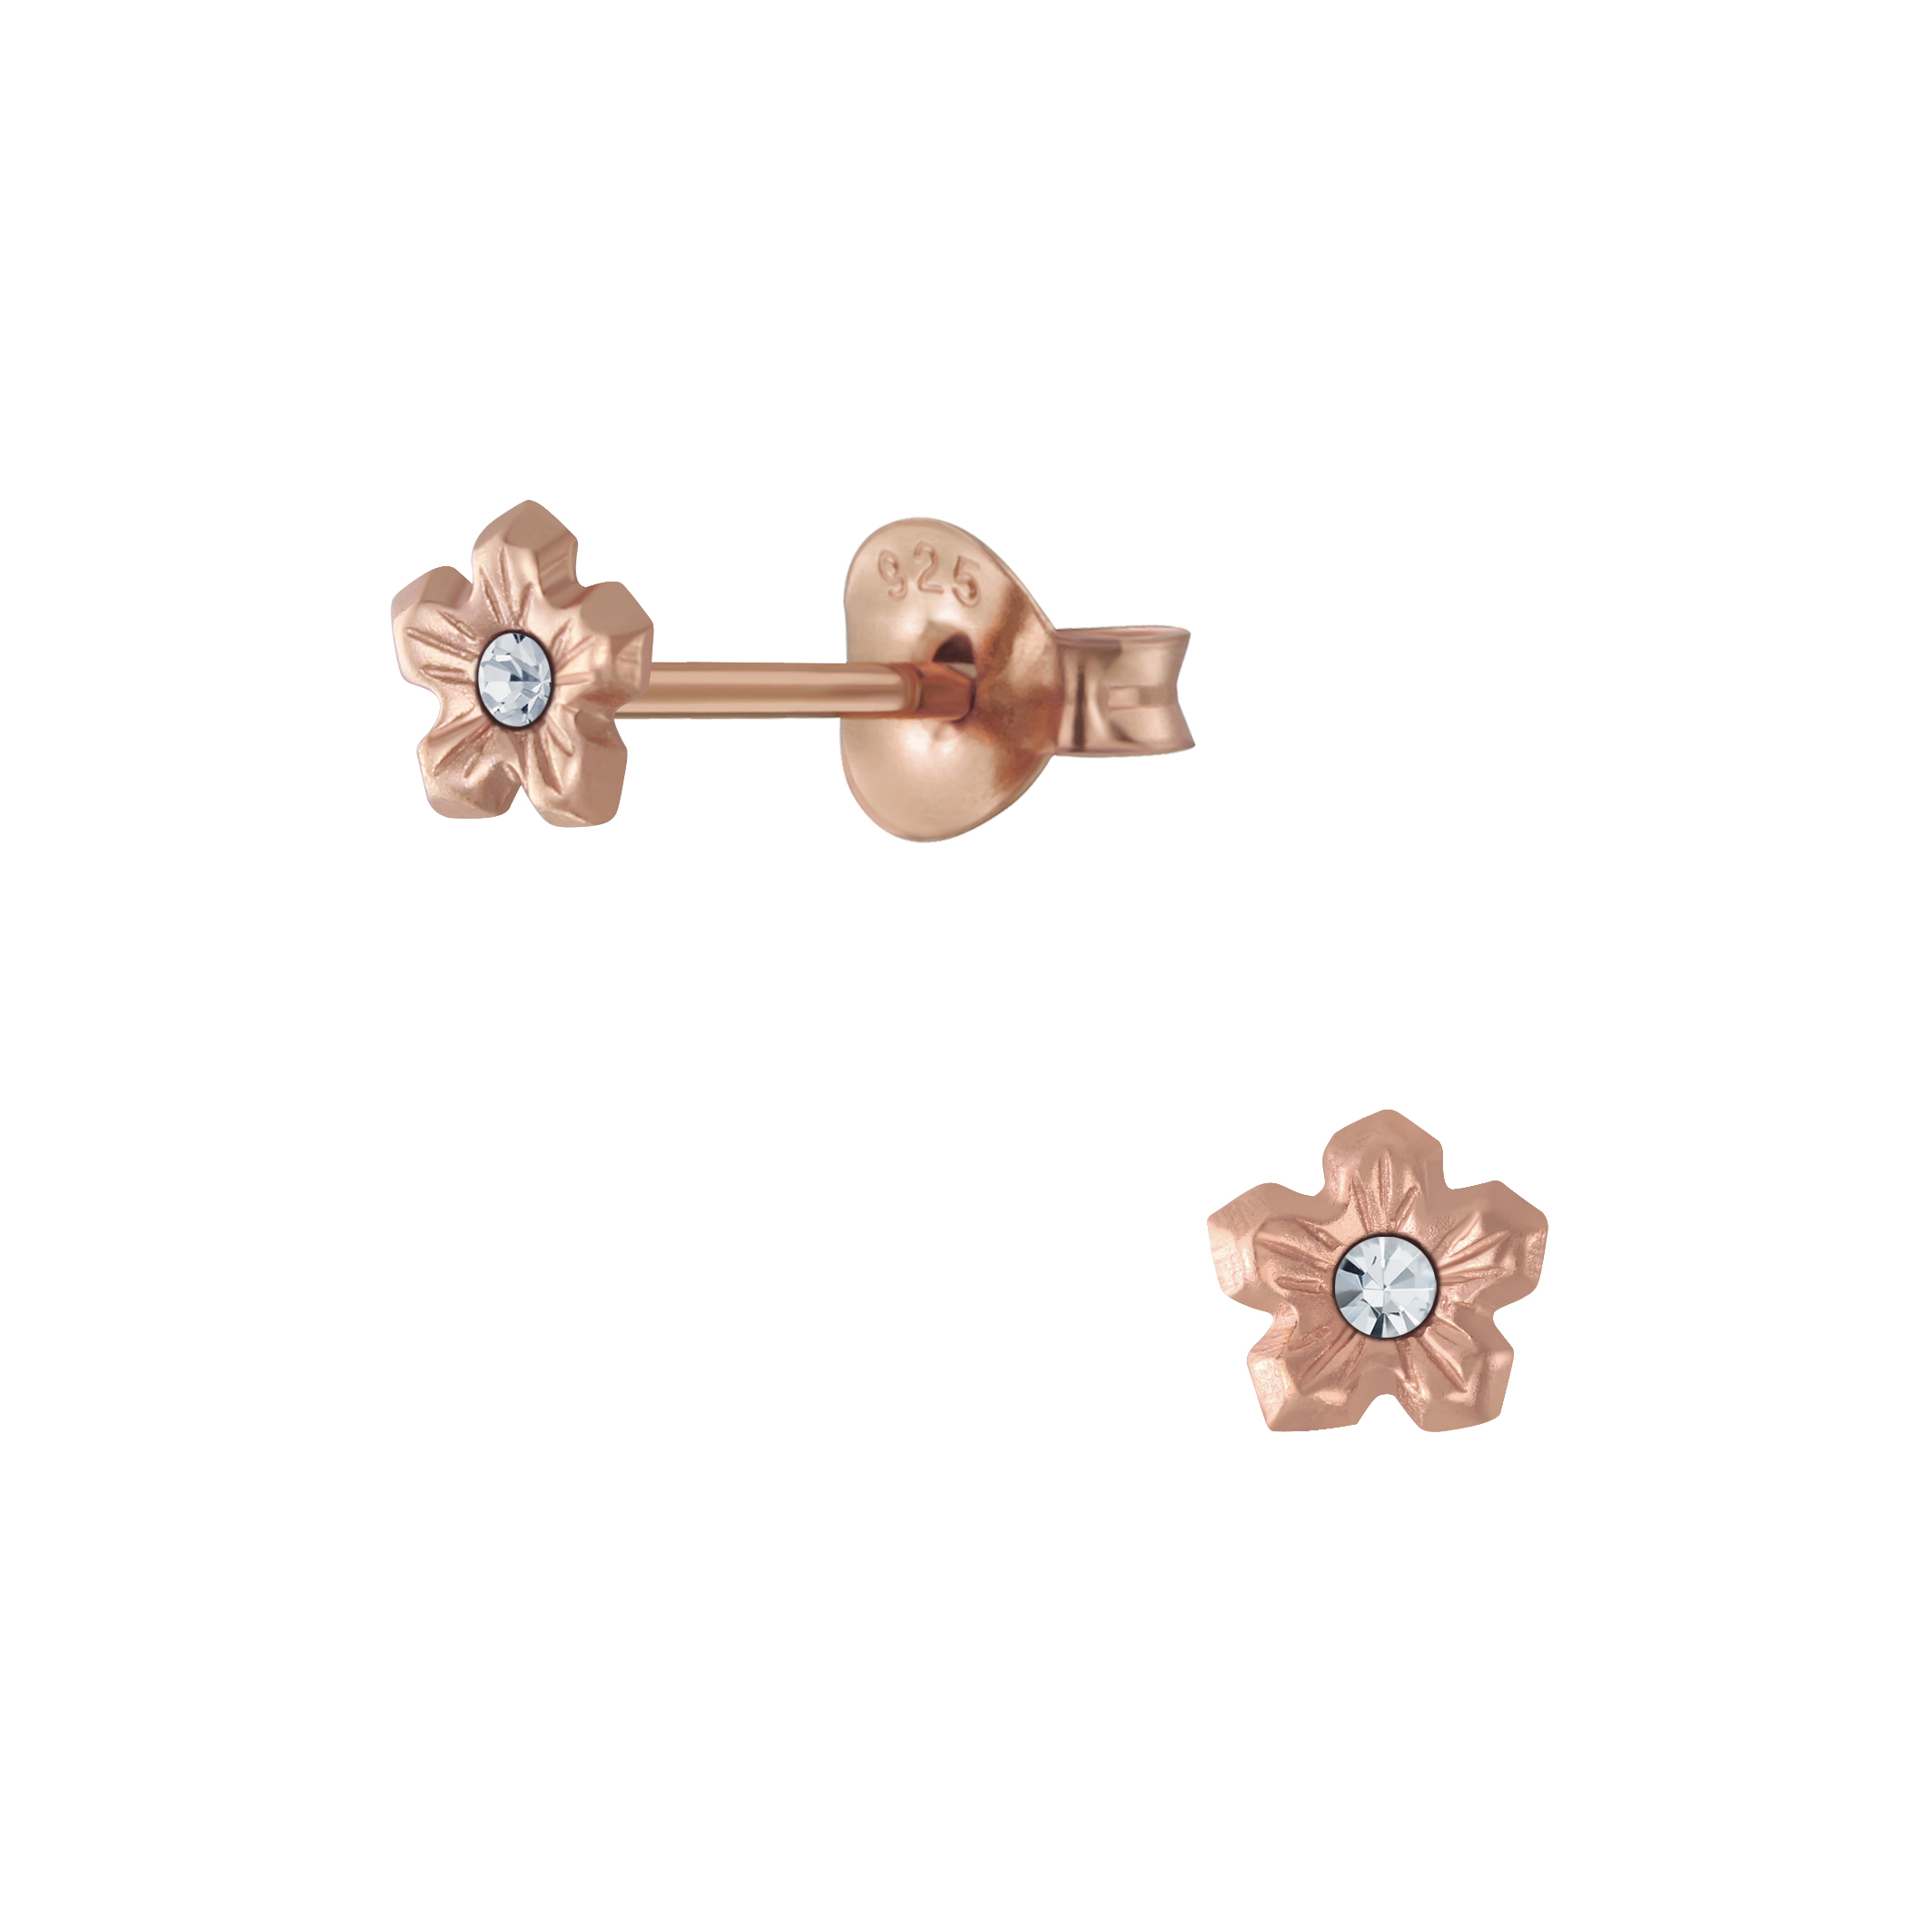 rose gold-plated nickel free sterling silver flower stud earrings with crystal center